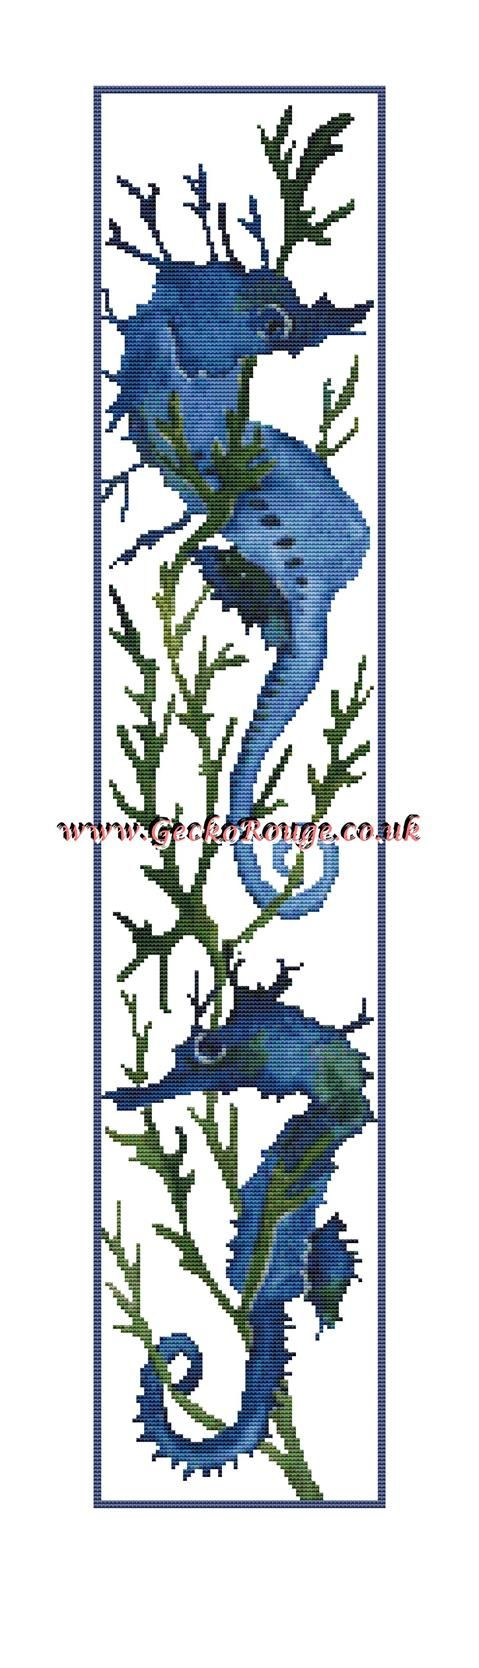 Seahorse Runner by Pamela Muller Cross Stitch Kit